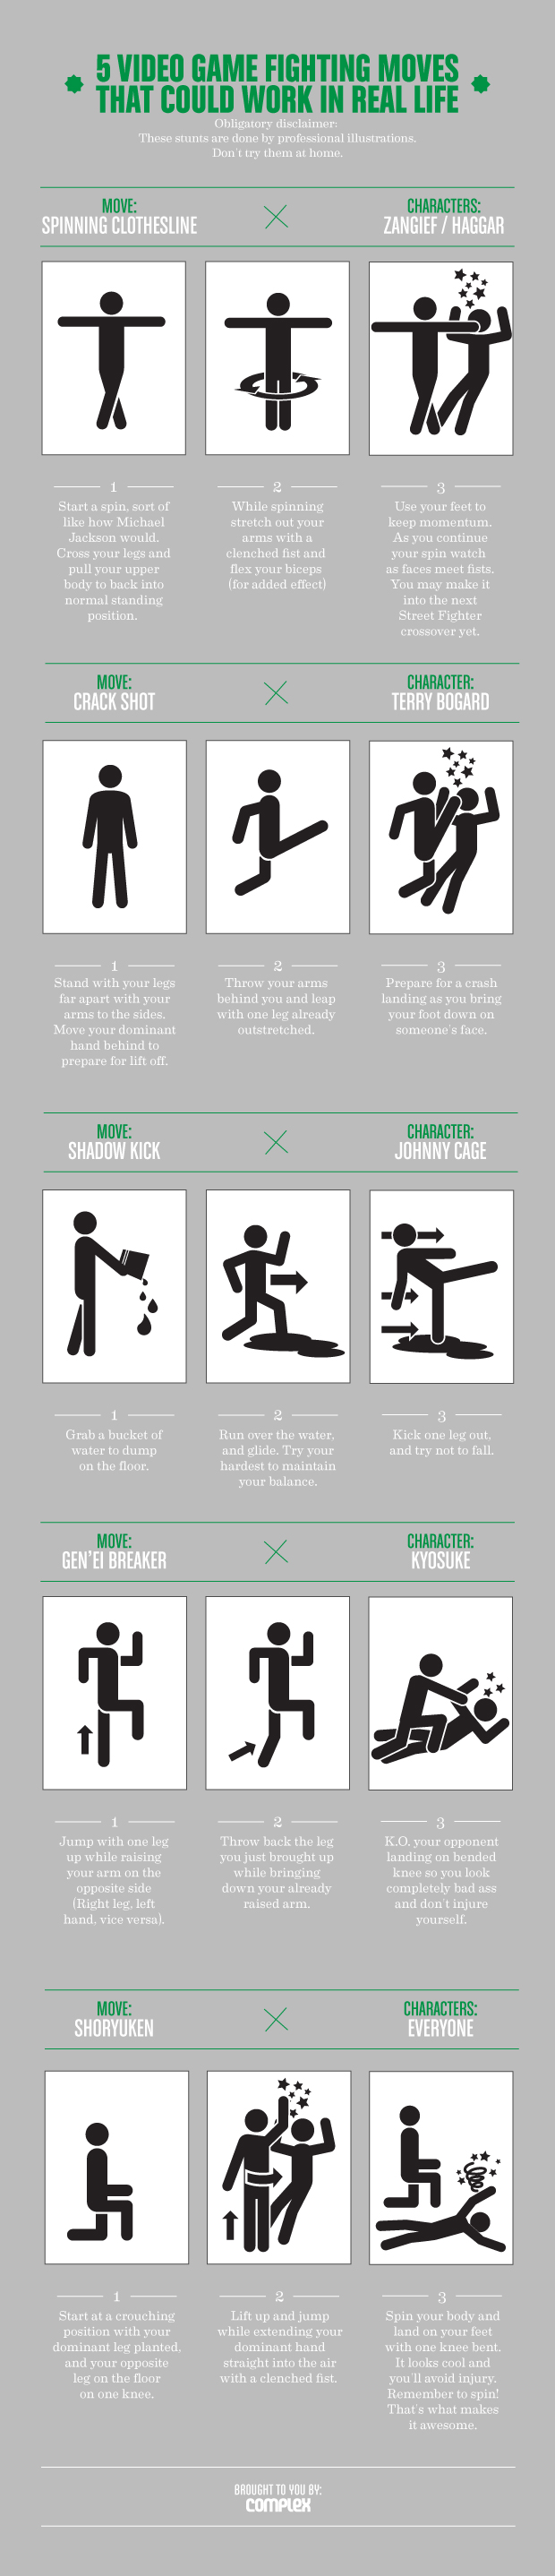 5-Video-Game-Fighting-Moves-That-Could-Work-In-Real-Life-infographic